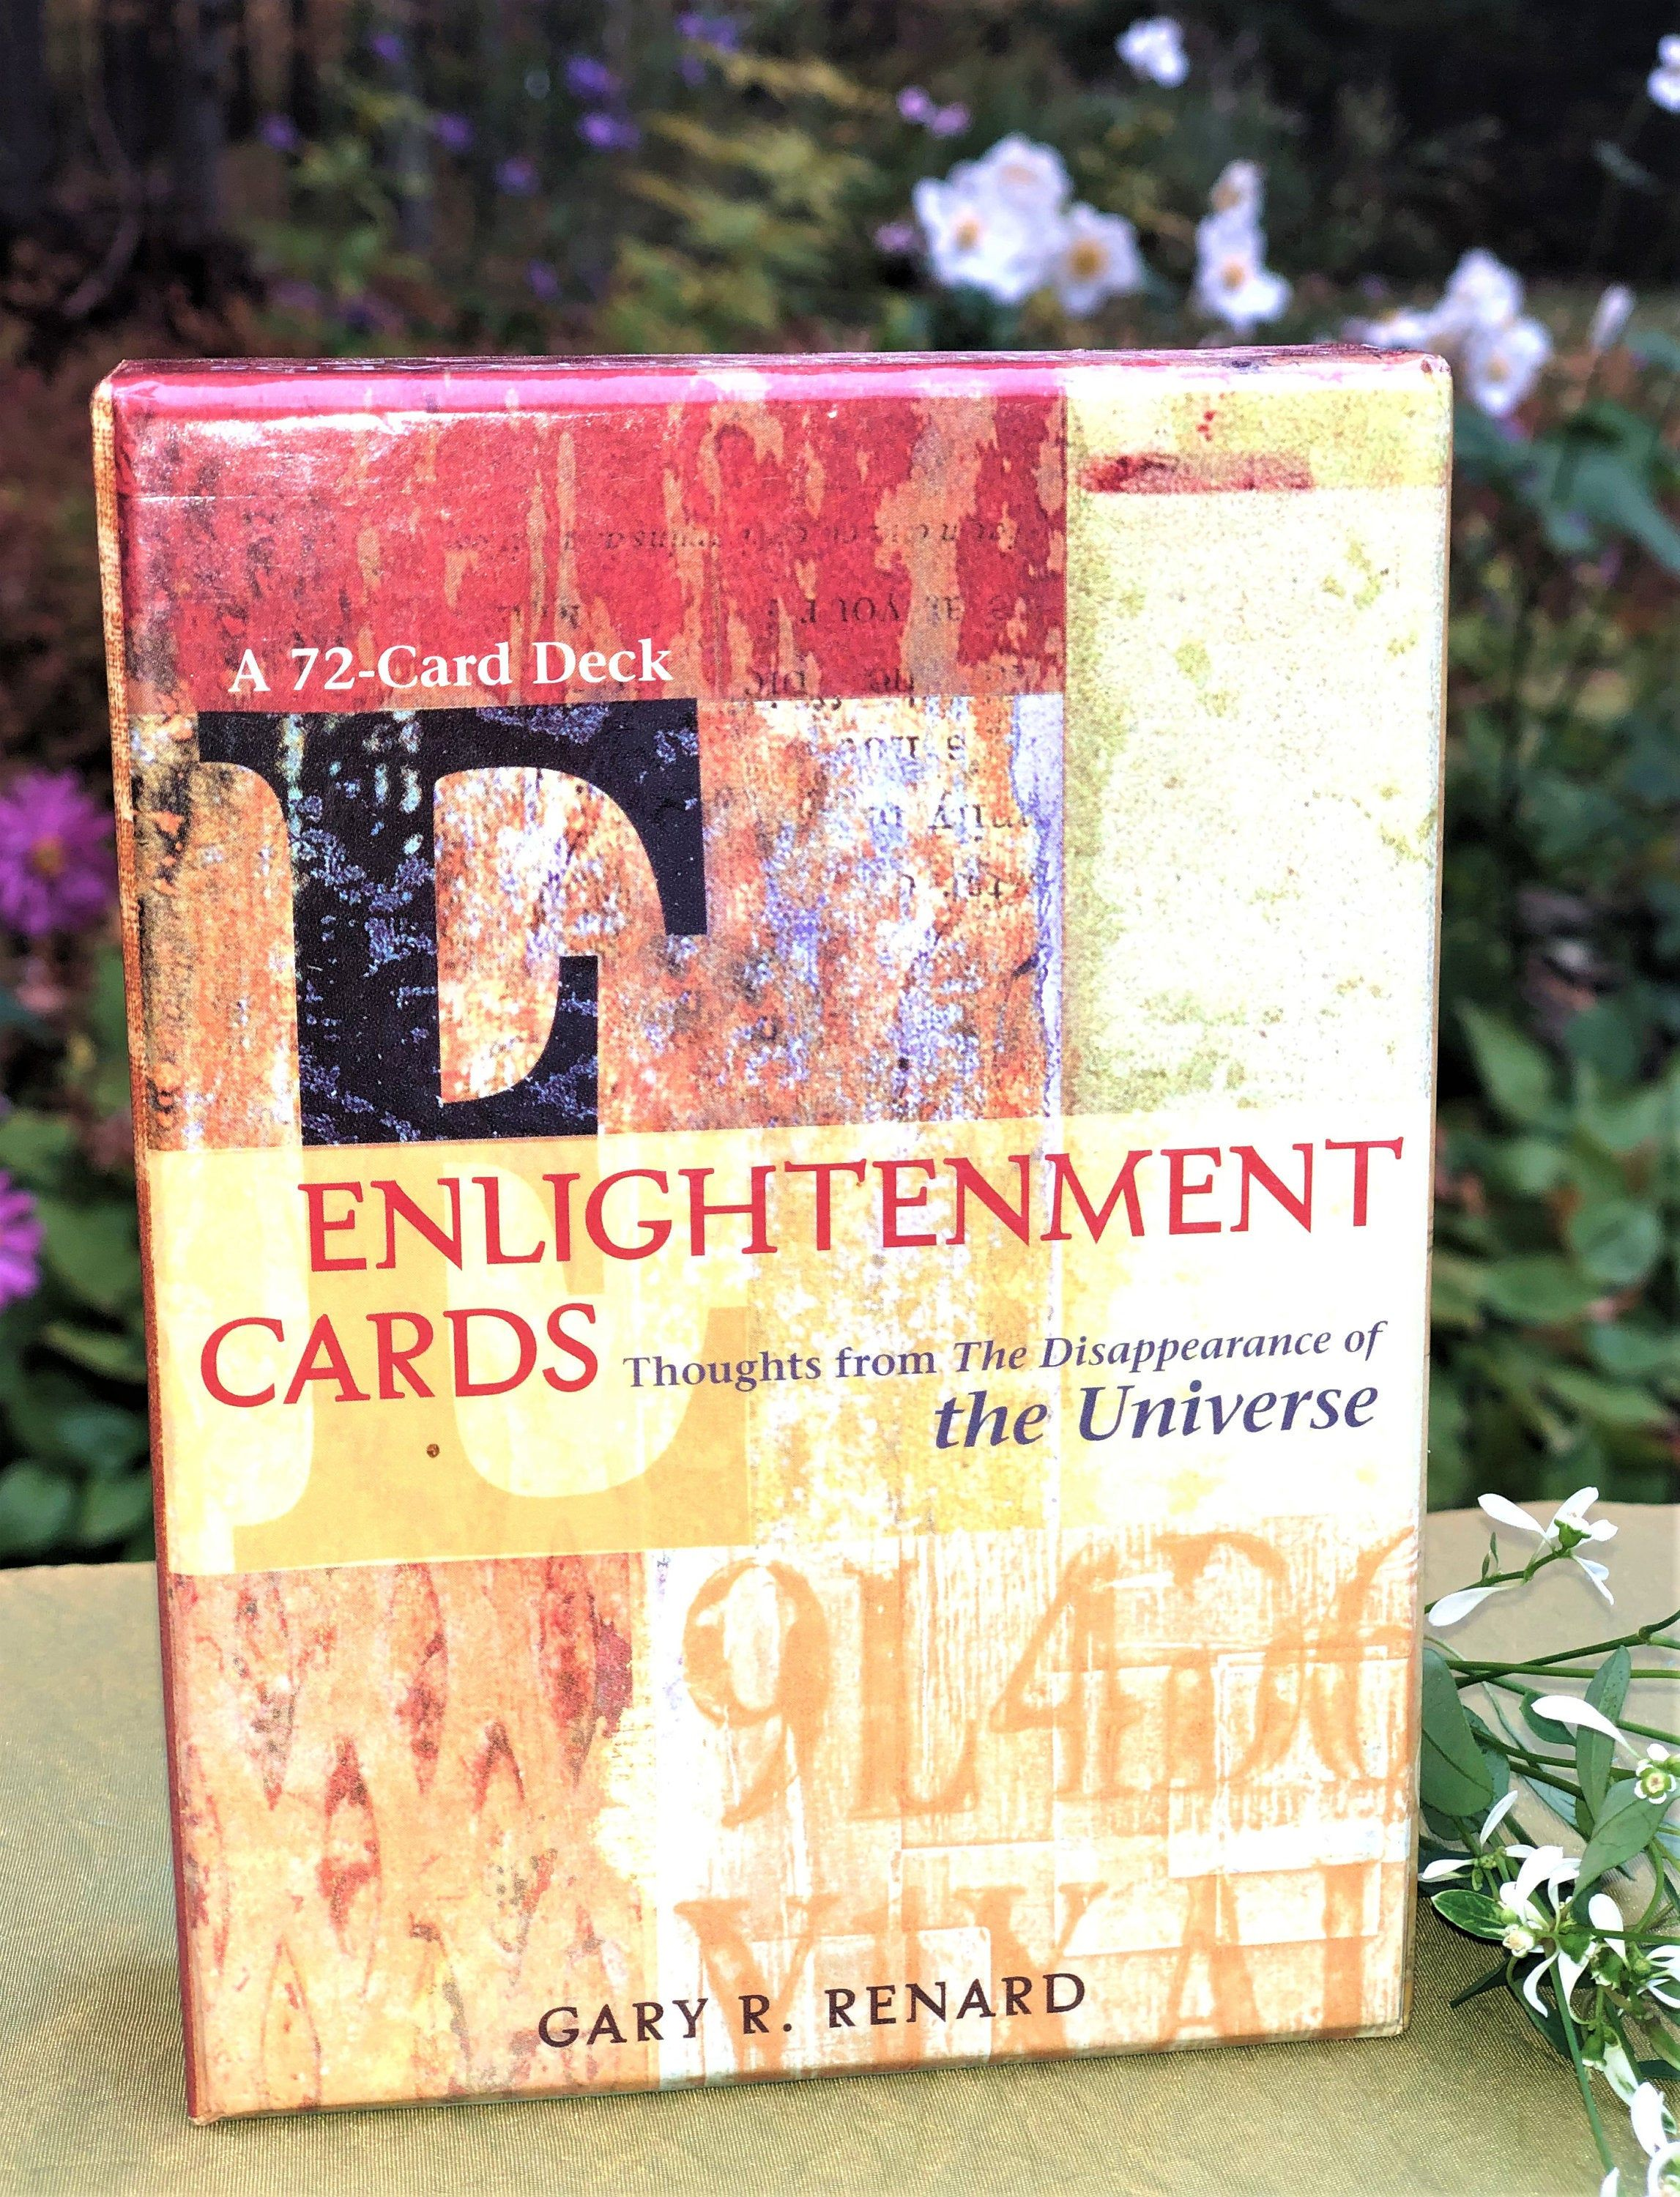 Dissappearance Of Universe Cards Enlightenment Gary Renard 72 Inspirational Card Boxed Set In 2020 Inspirational Cards Cards Universe